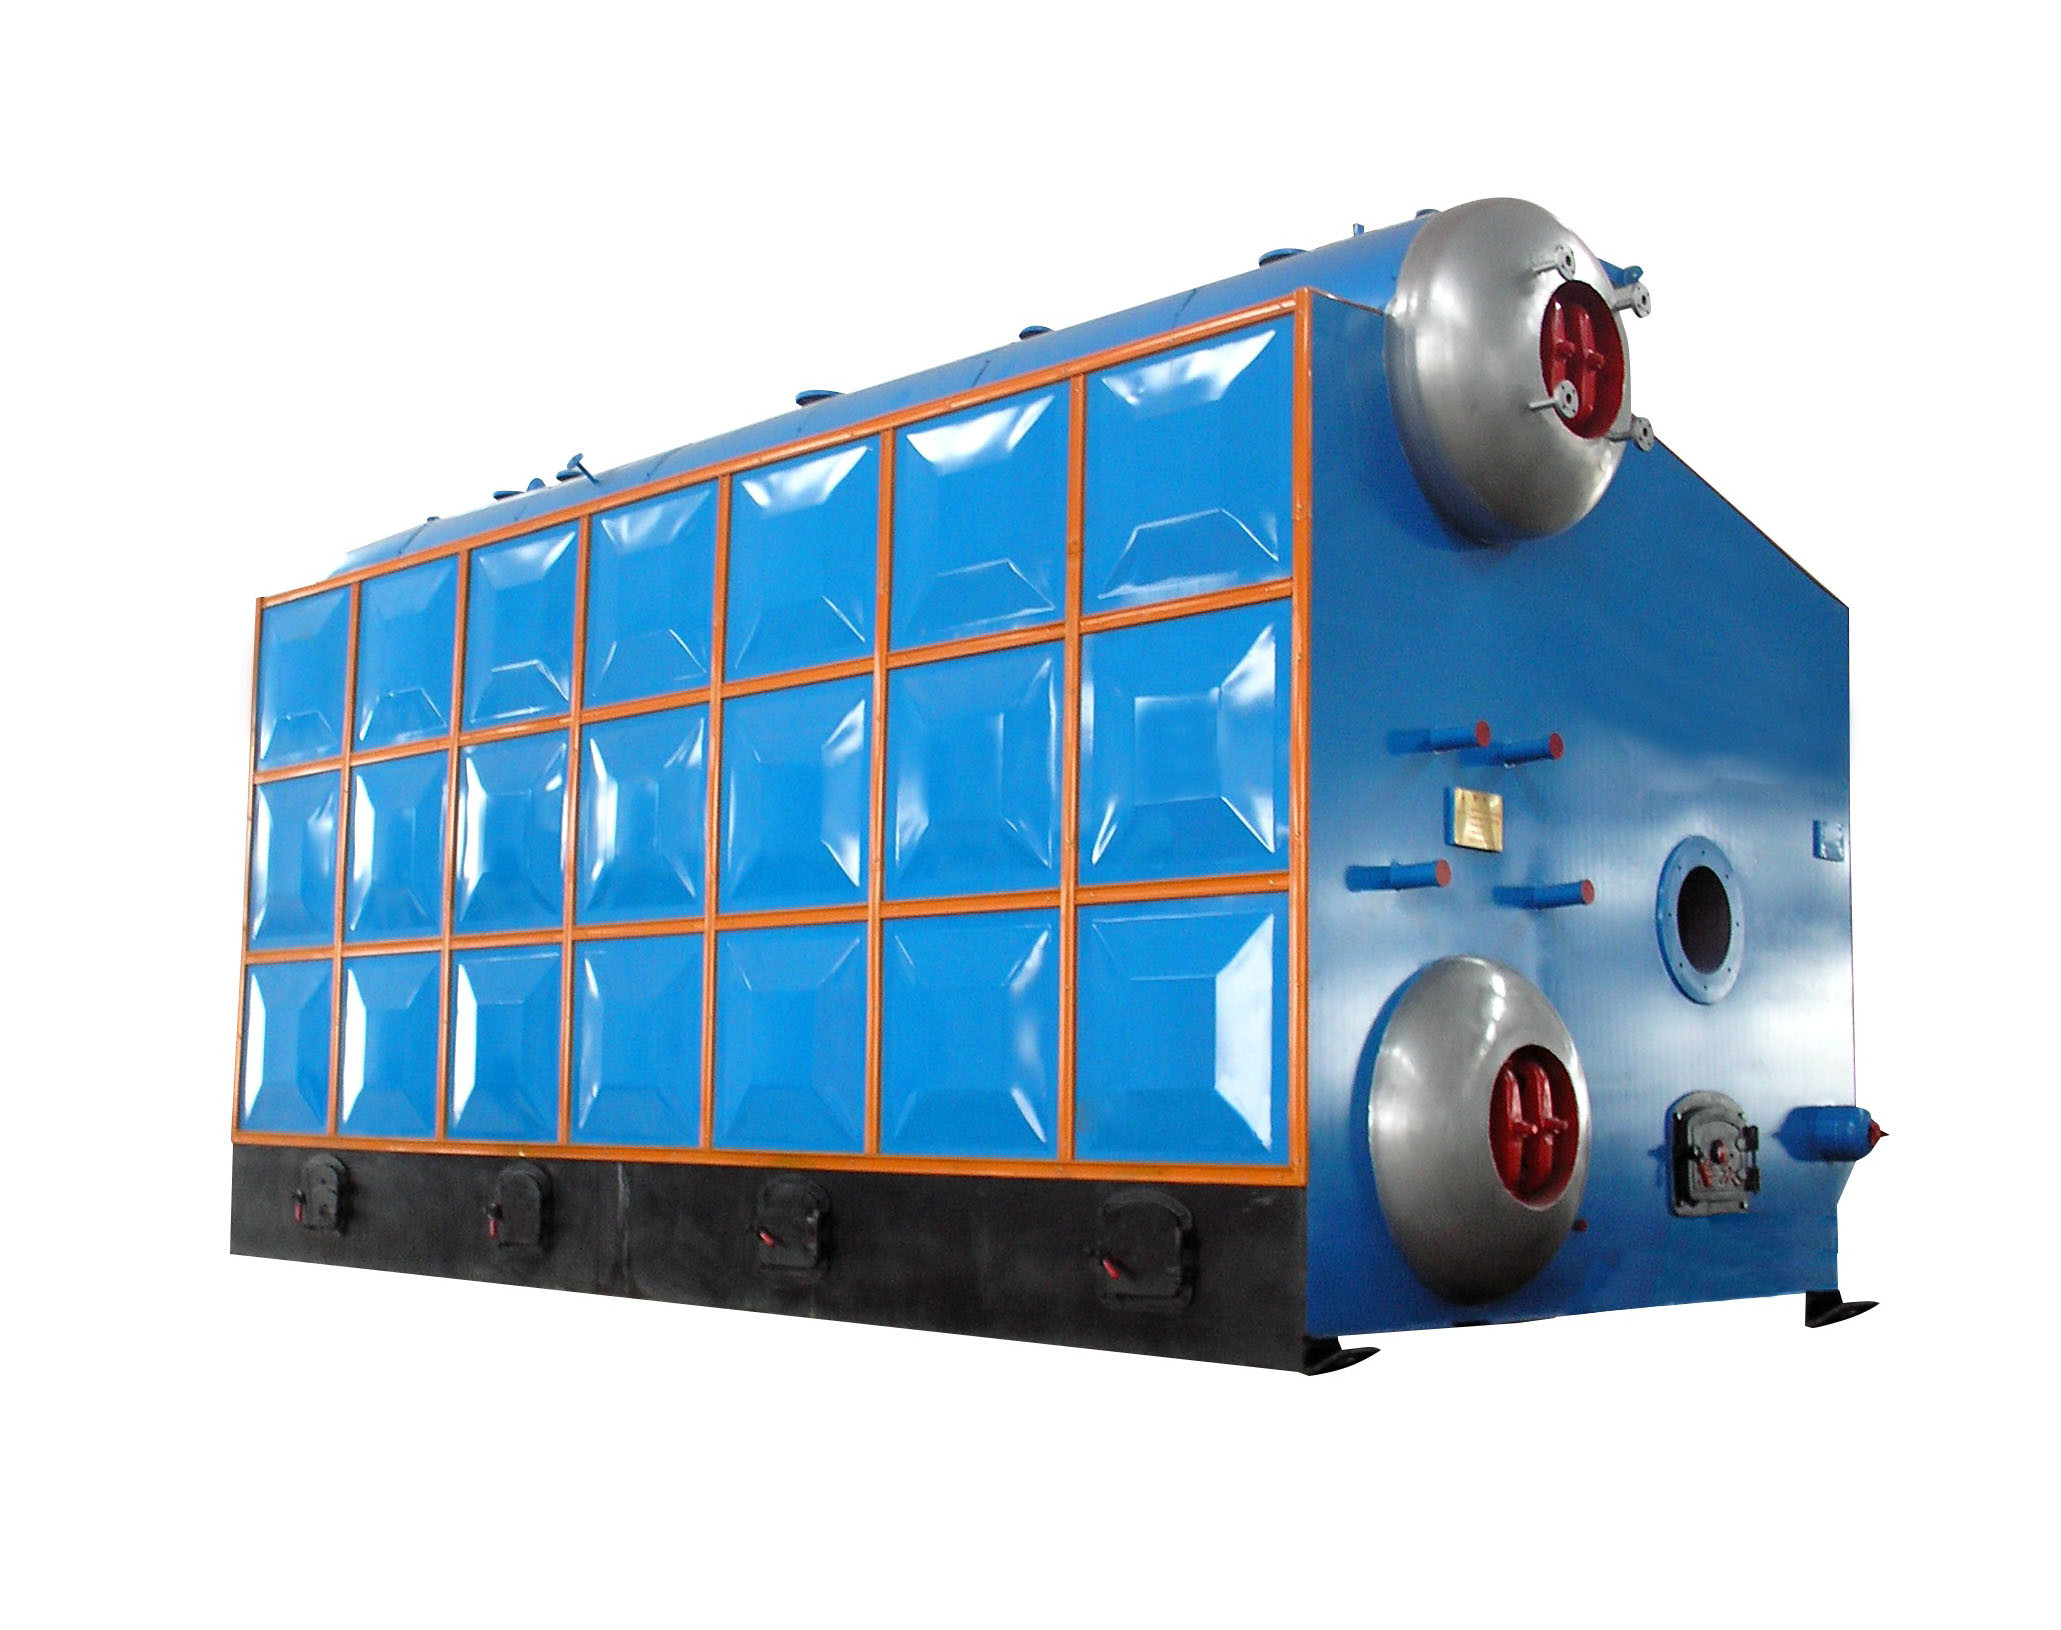 China High Pressure Oil Gas Boiler, High Pressure Oil Gas Boiler ...